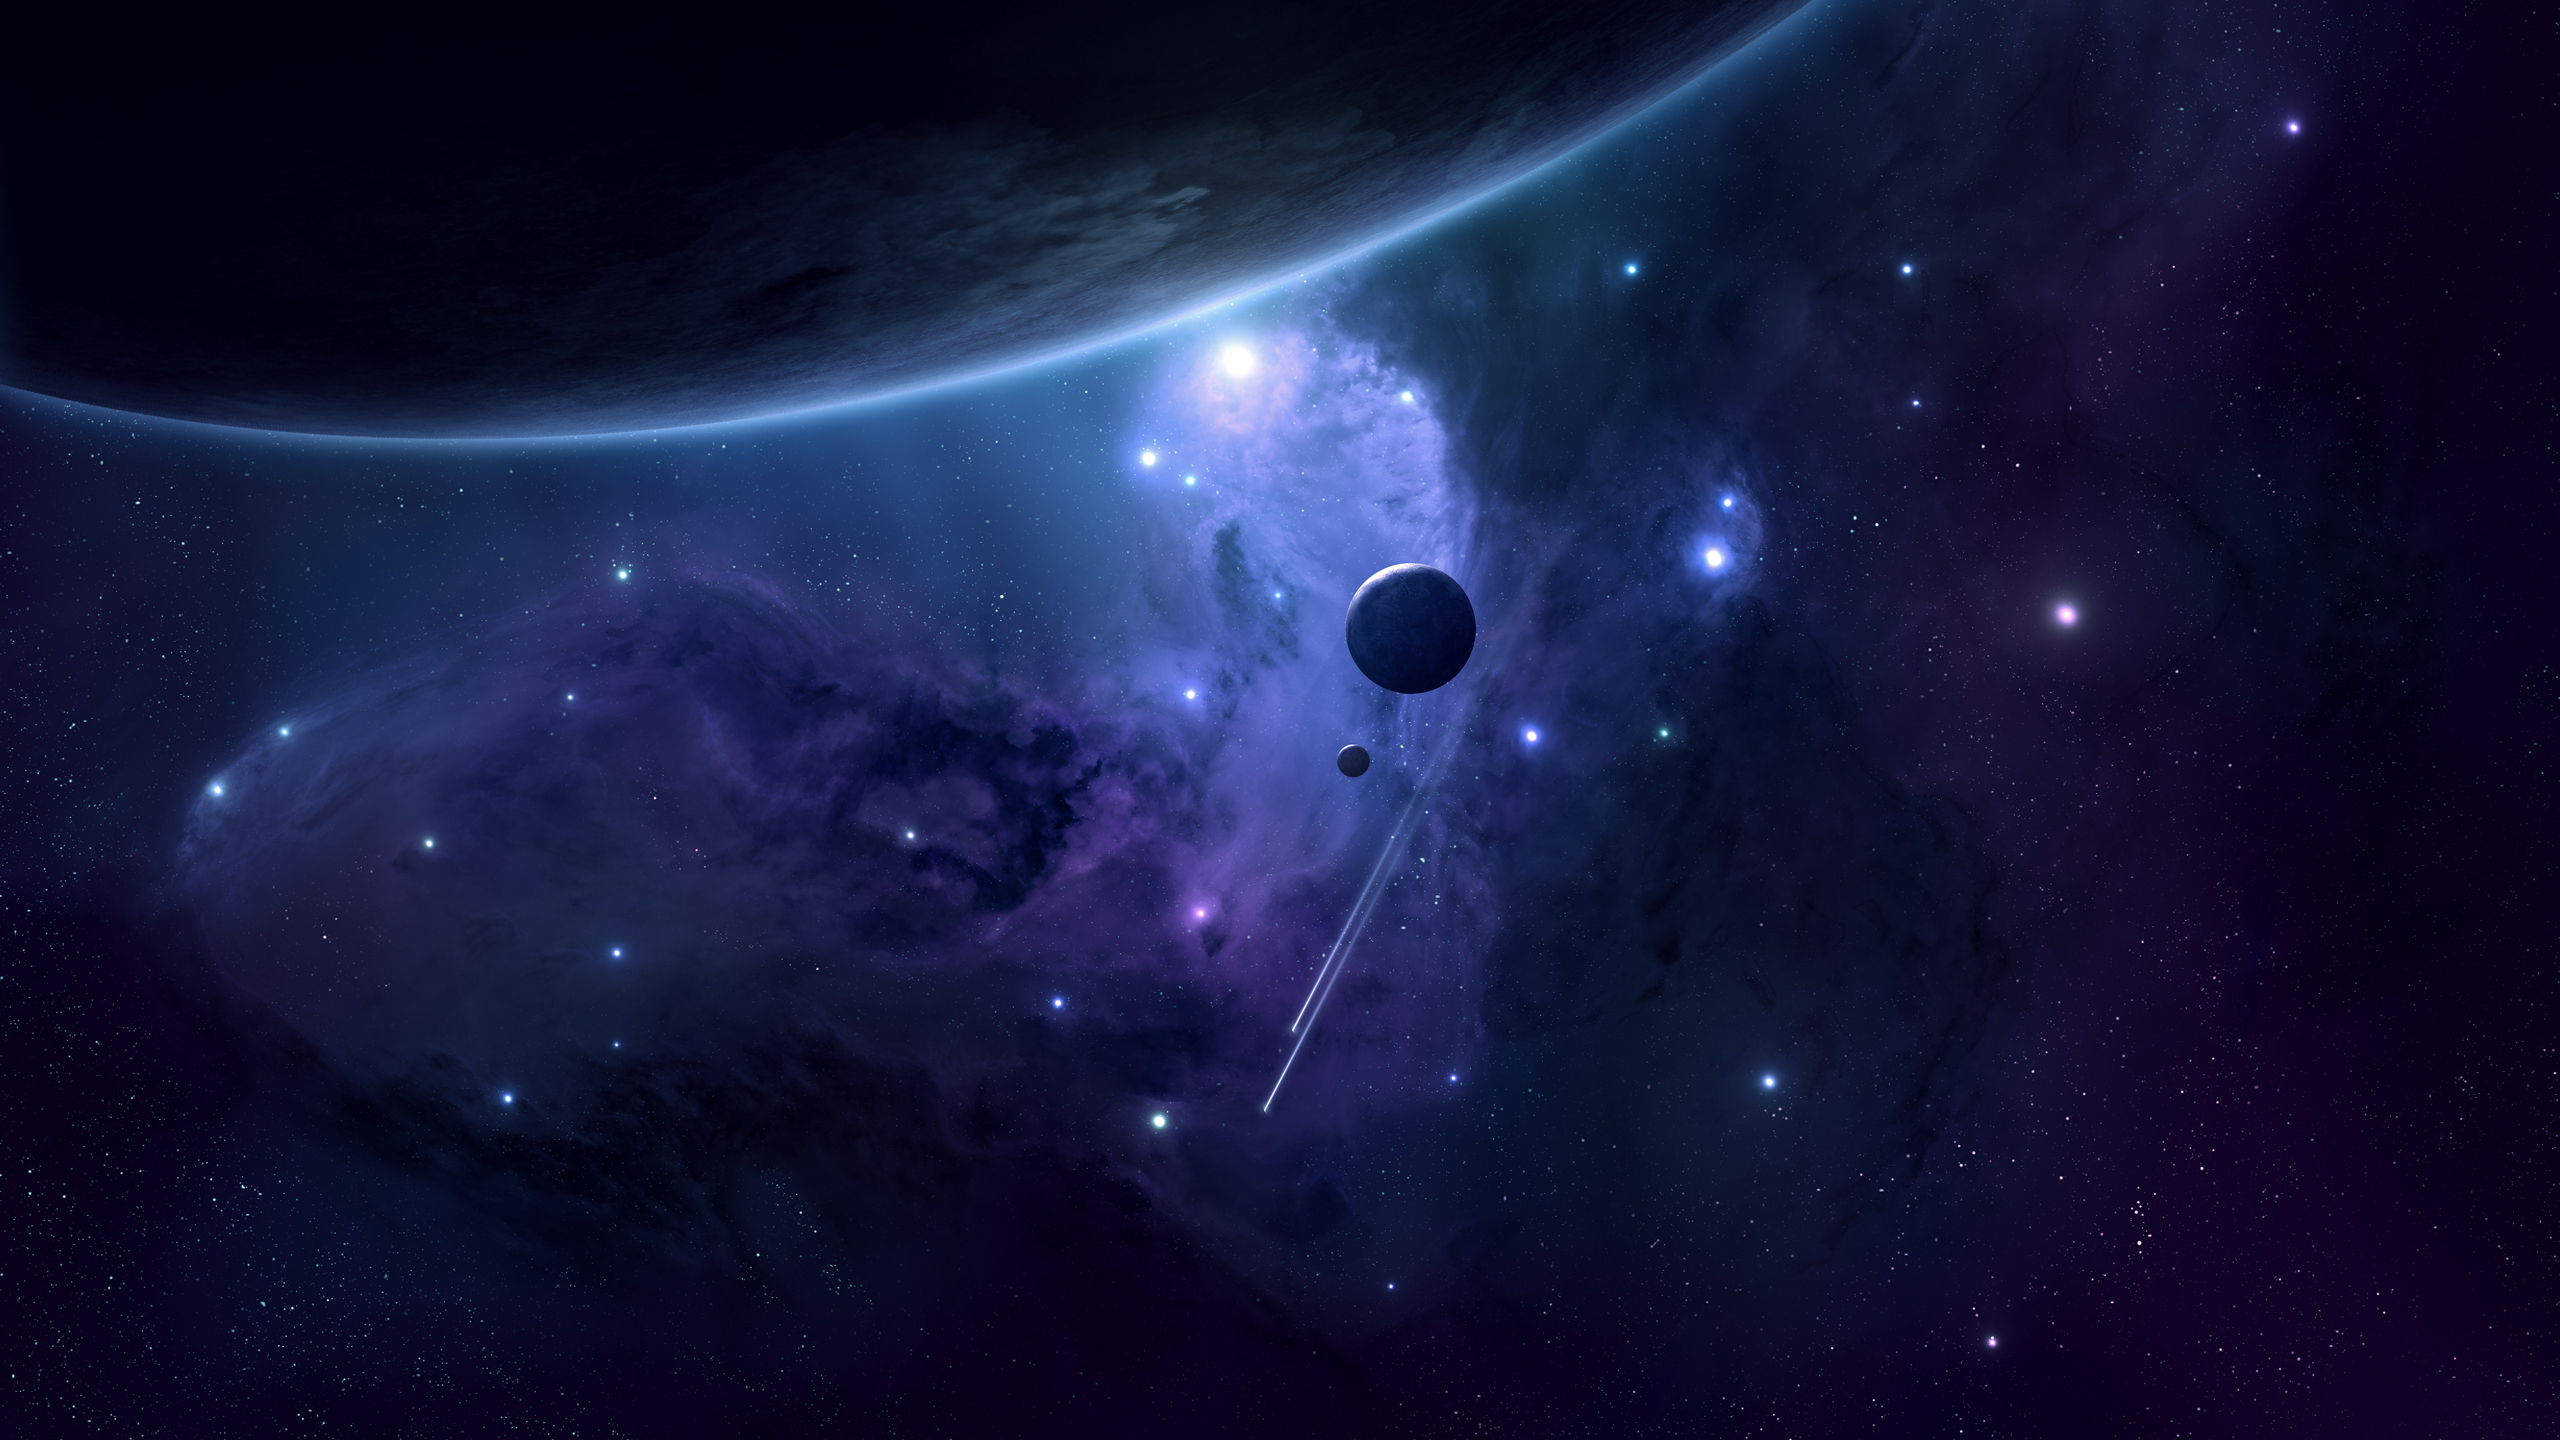 In an unexplored galaxy